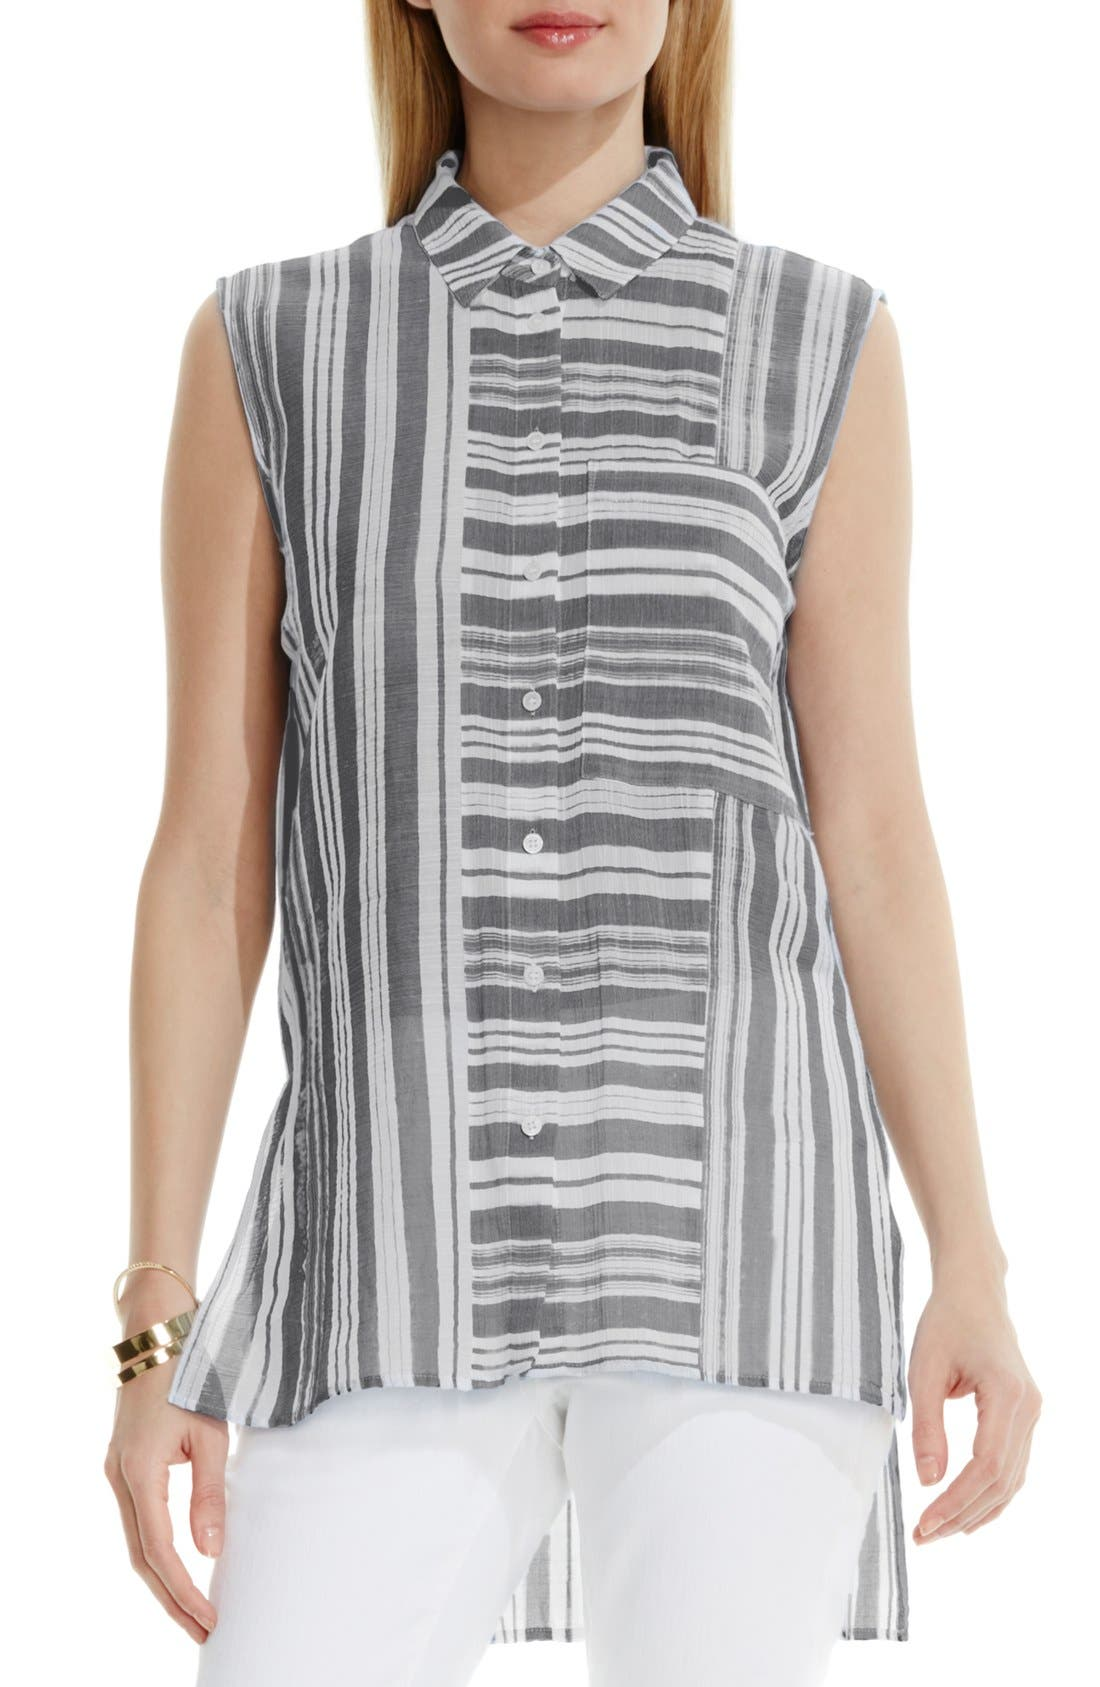 Main Image - Two by Vince Camuto Sheer Stripe Sleeveless Blouse